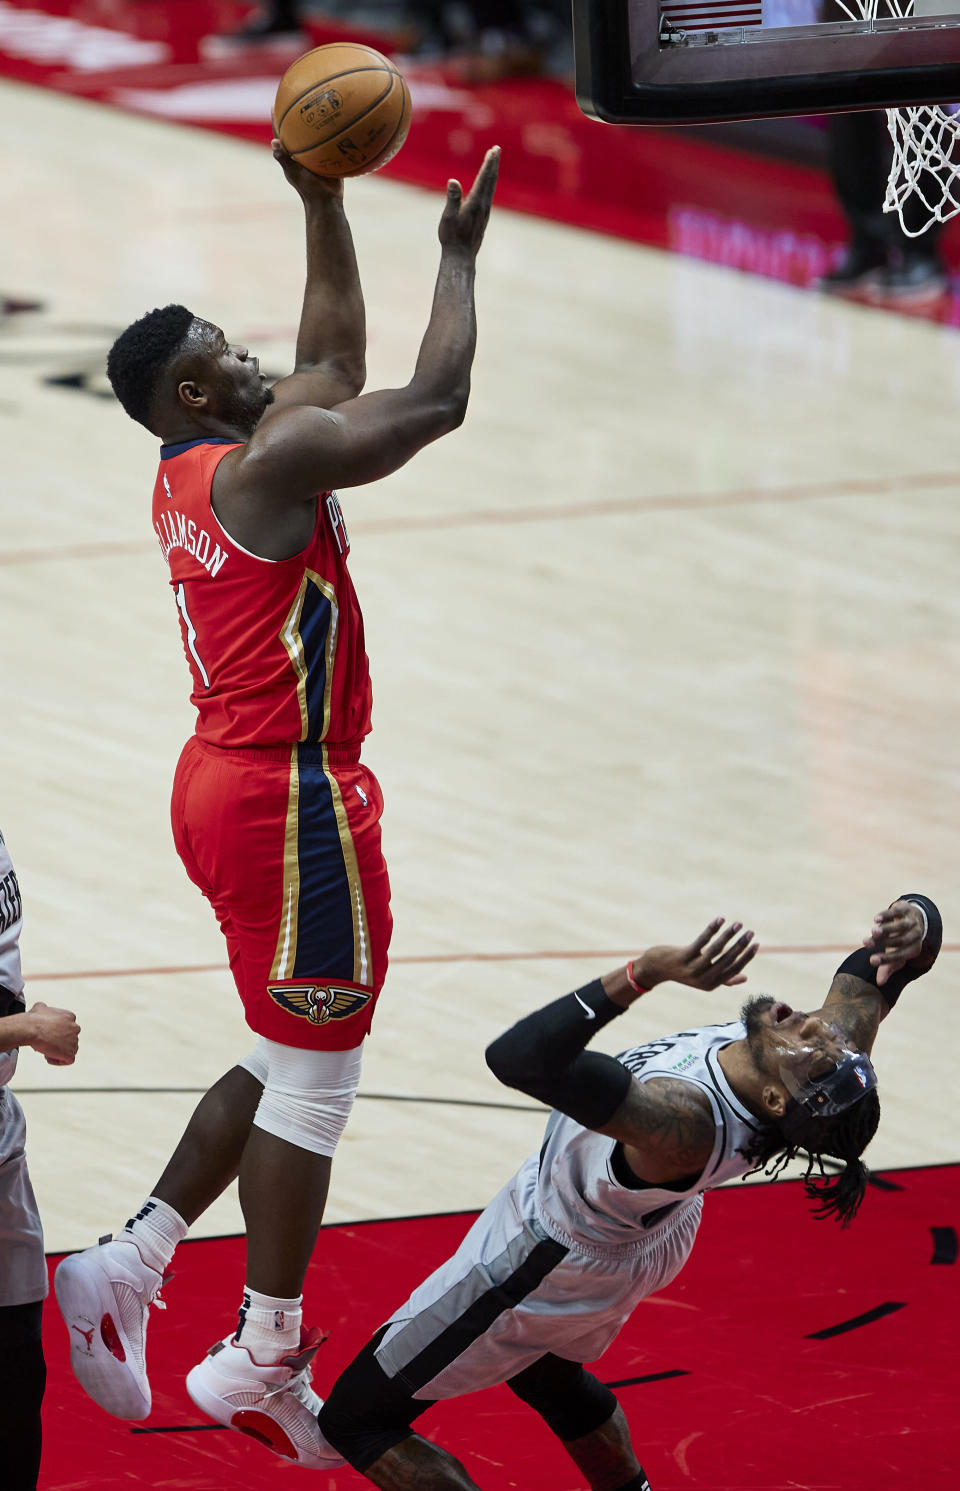 New Orleans Pelicans forward Zion Williamson, left, shoots over Portland Trail Blazers forward Robert Covington during the first half of an NBA basketball game in Portland, Ore., Tuesday, March 16, 2021. (AP Photo/Craig Mitchelldyer)